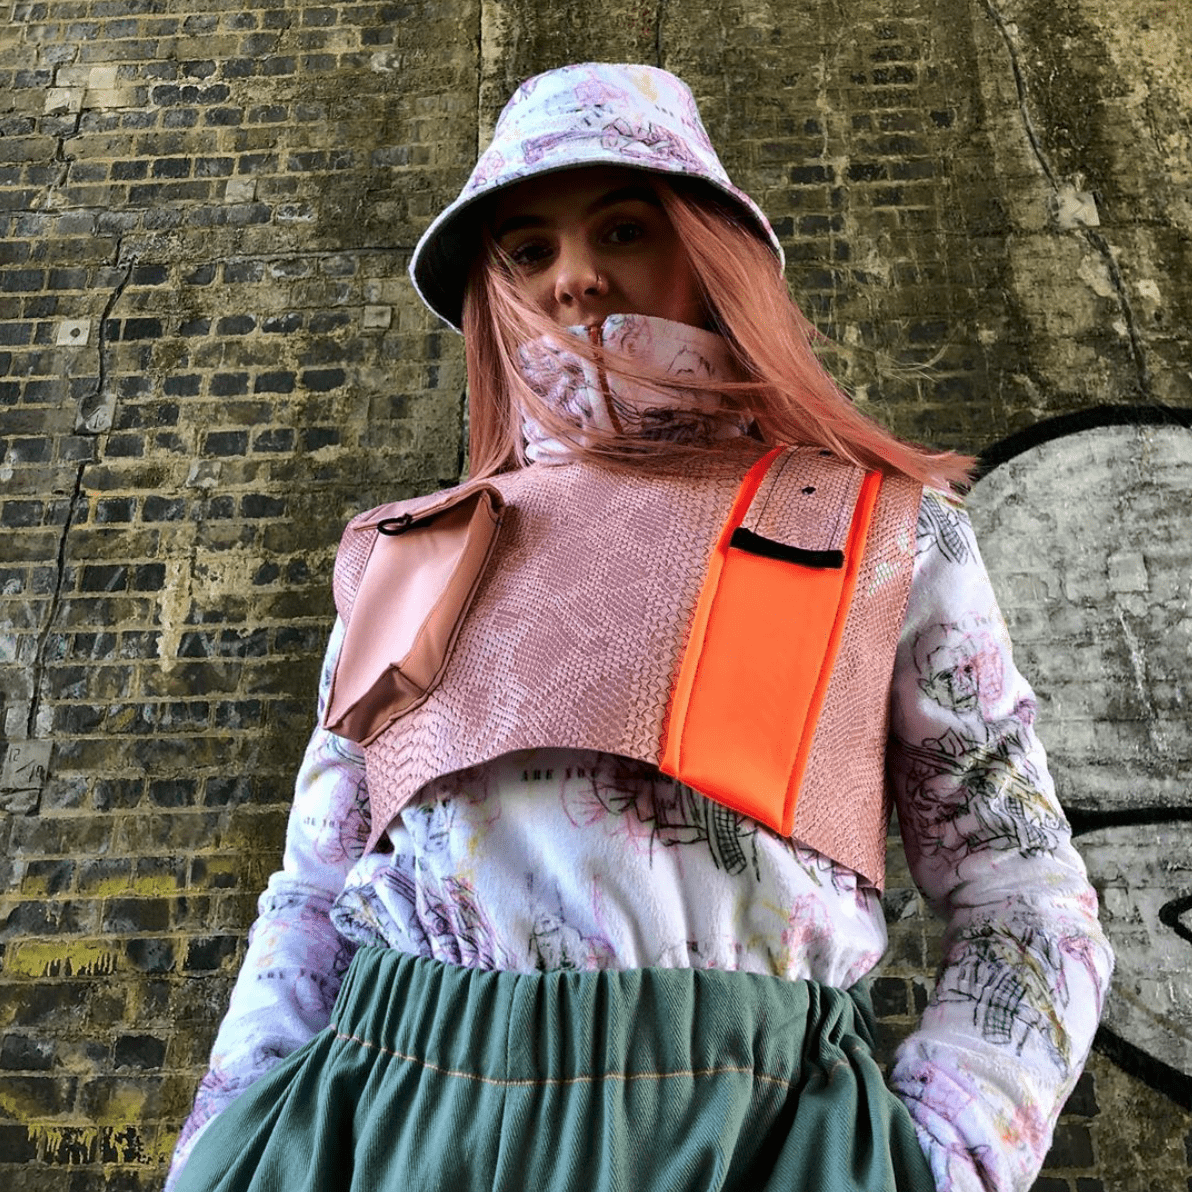 Model wearing a pink and white outfit standing next to a brick wall.